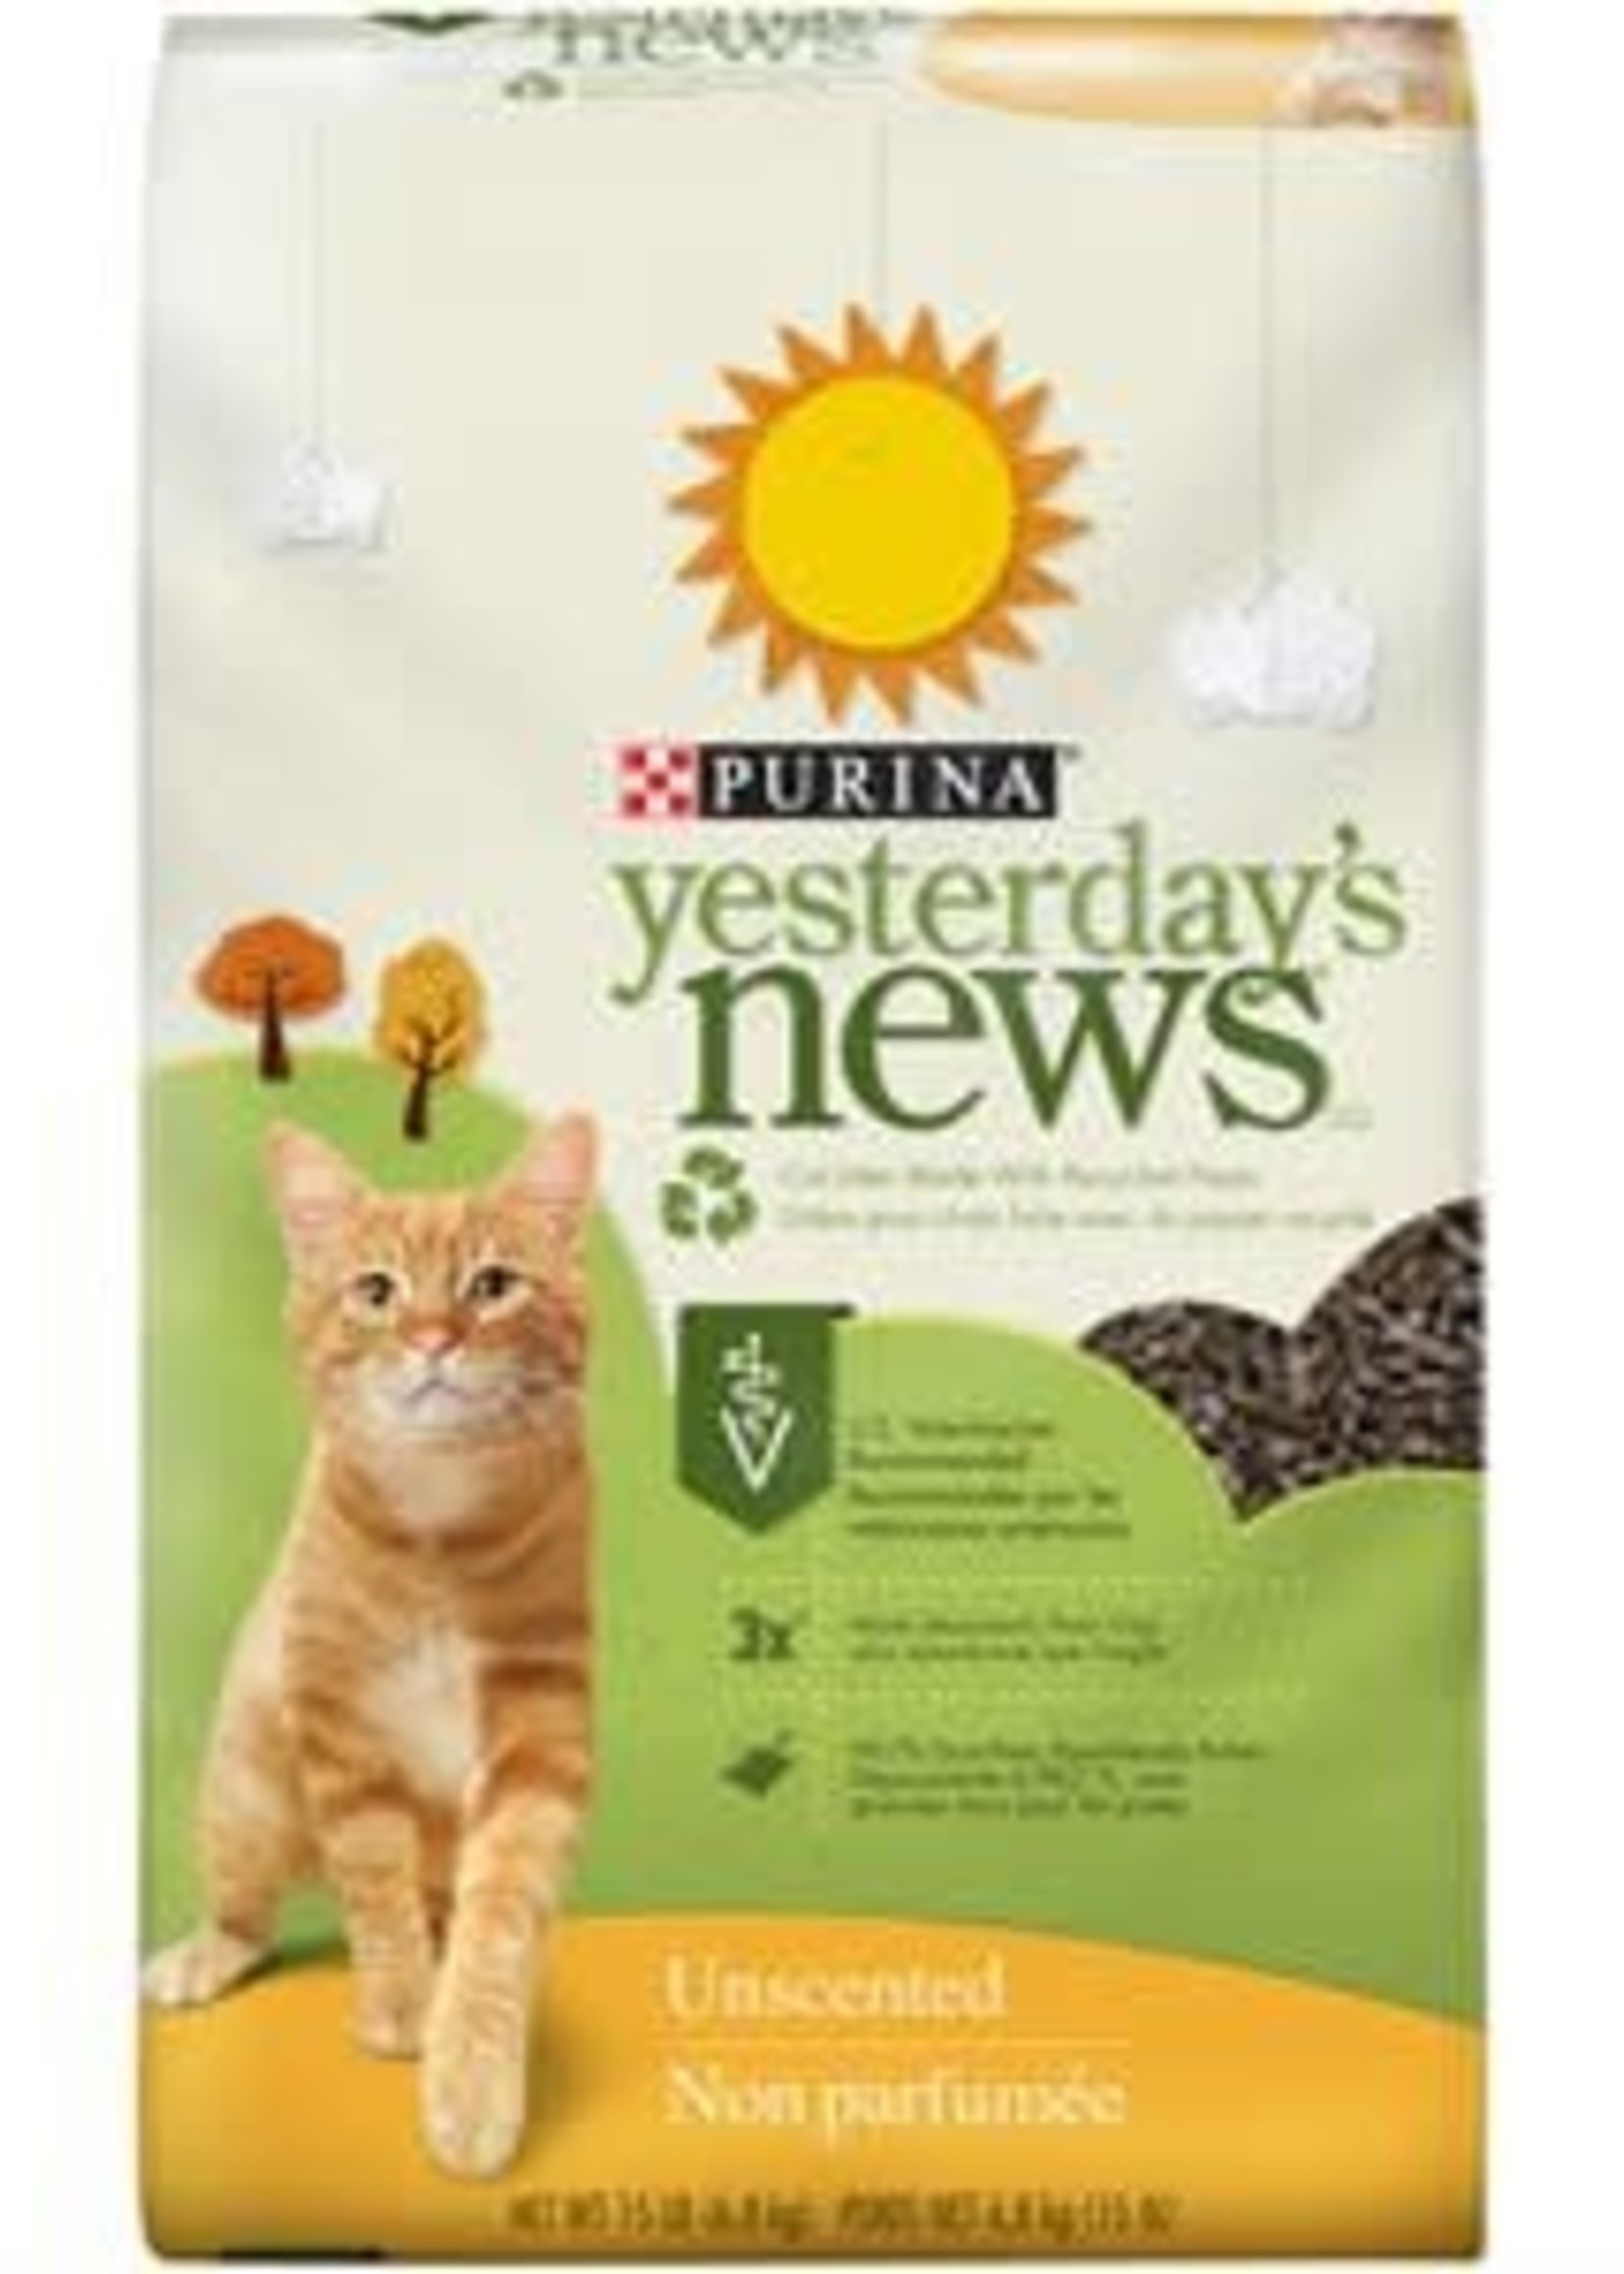 Yesterday's News® Yesterday's News Recycled Paper Litter 15lbs